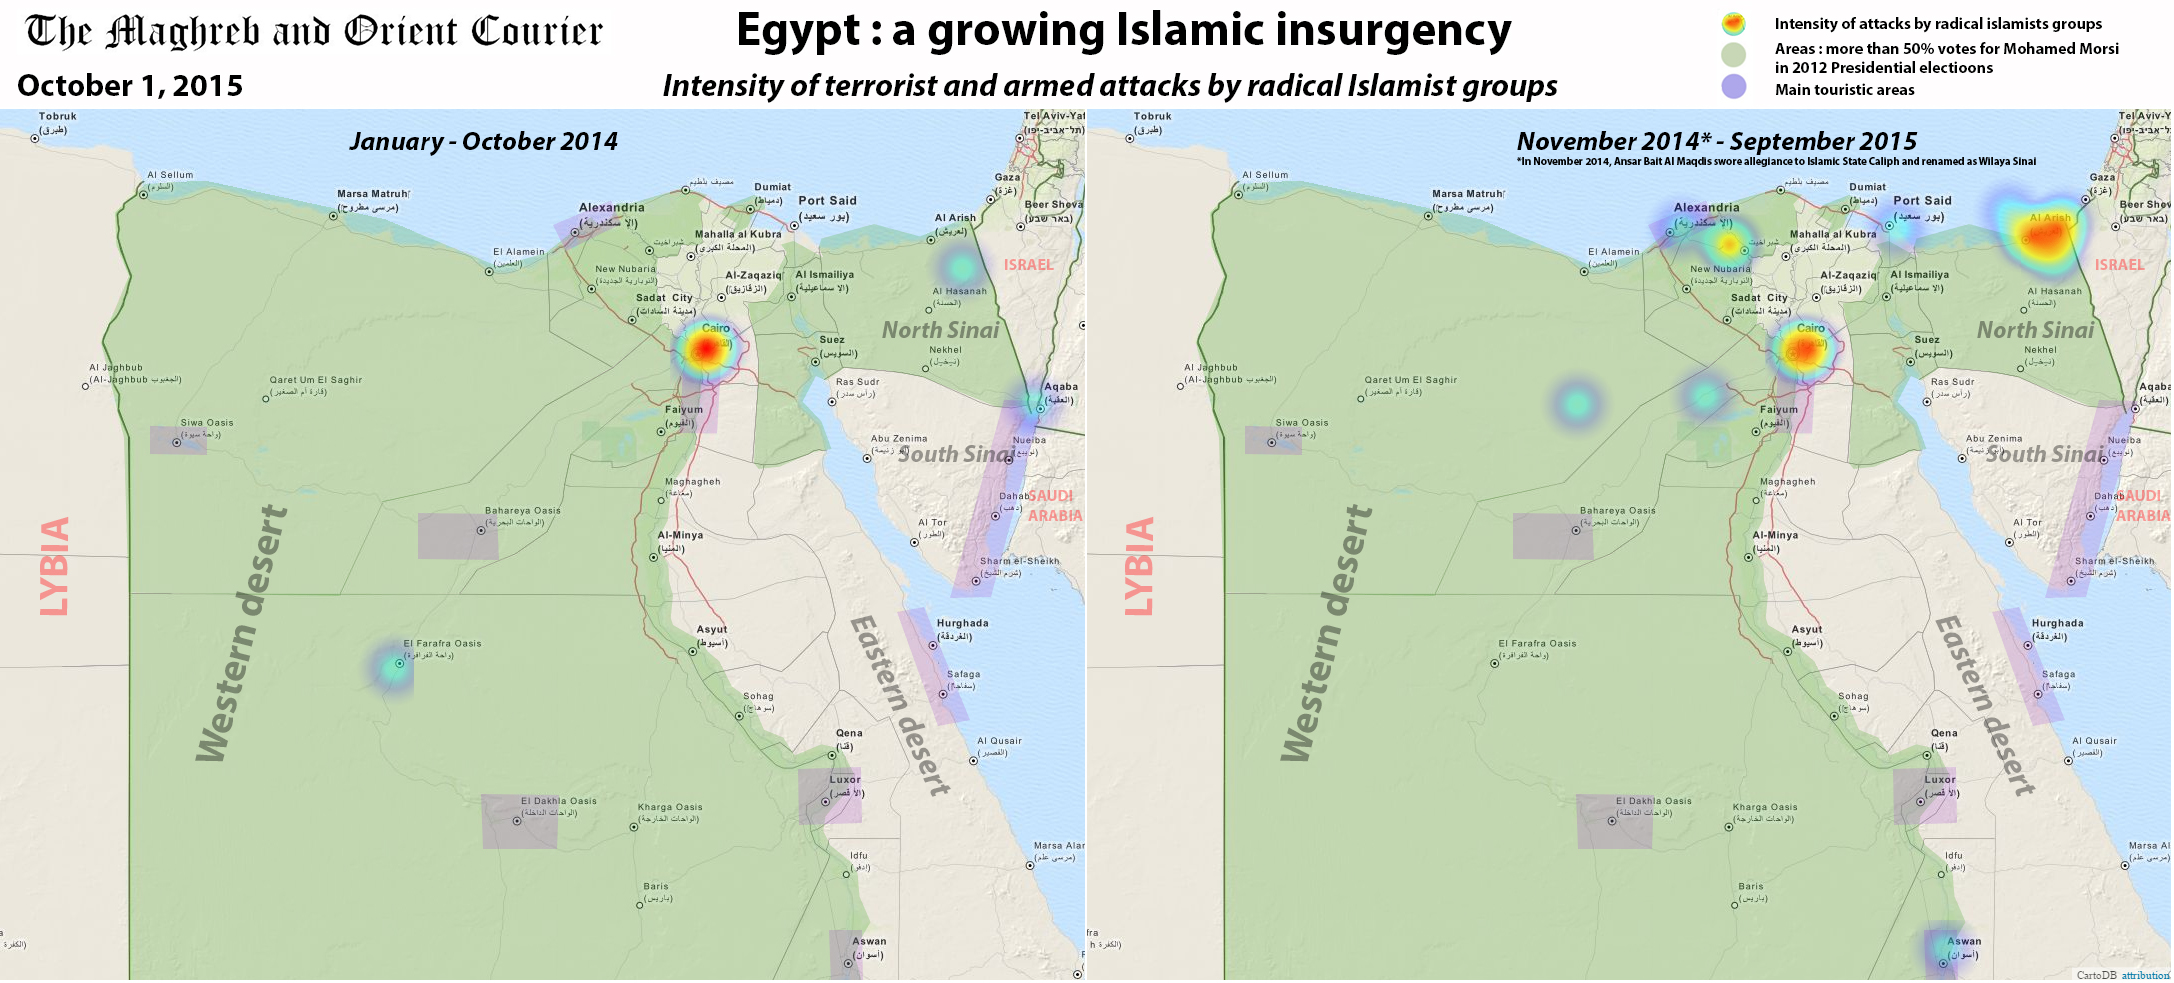 Egypt map islamic insurgency the maghreb and orient courier arab world maps septembre 2015 emmanuel pene gumiabroncs Choice Image